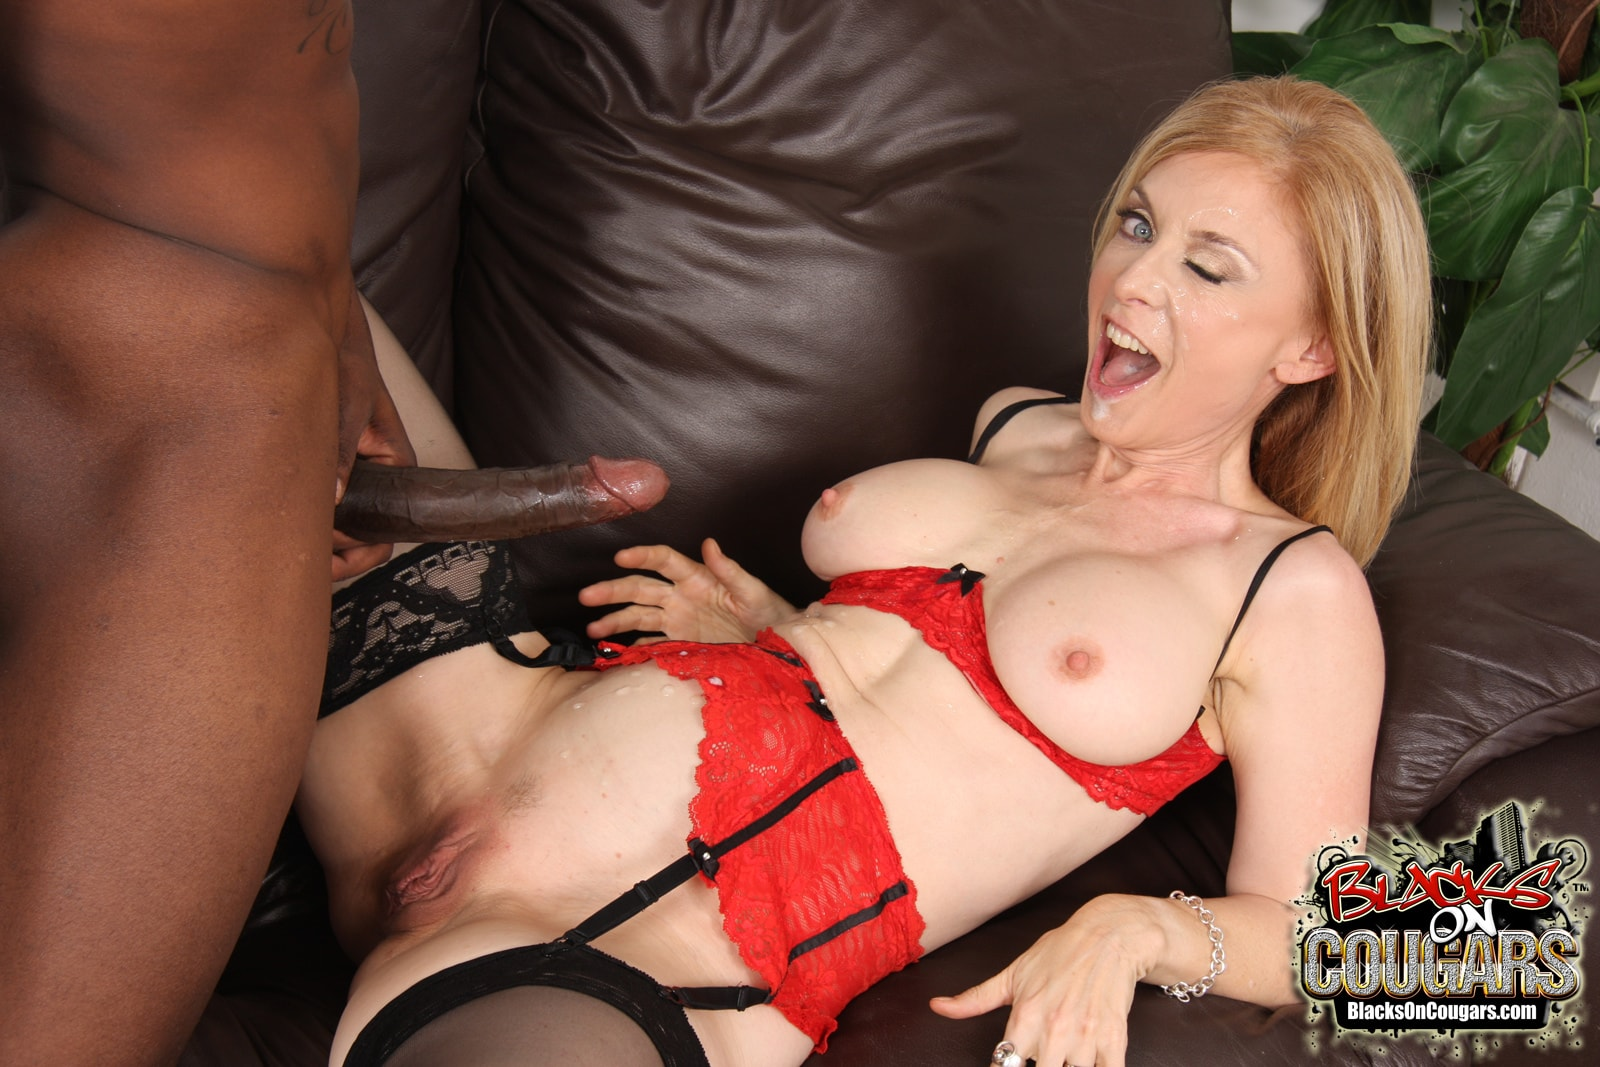 Dogfart '- Blacks On Cougars' starring Nina Hartley (Photo 29)